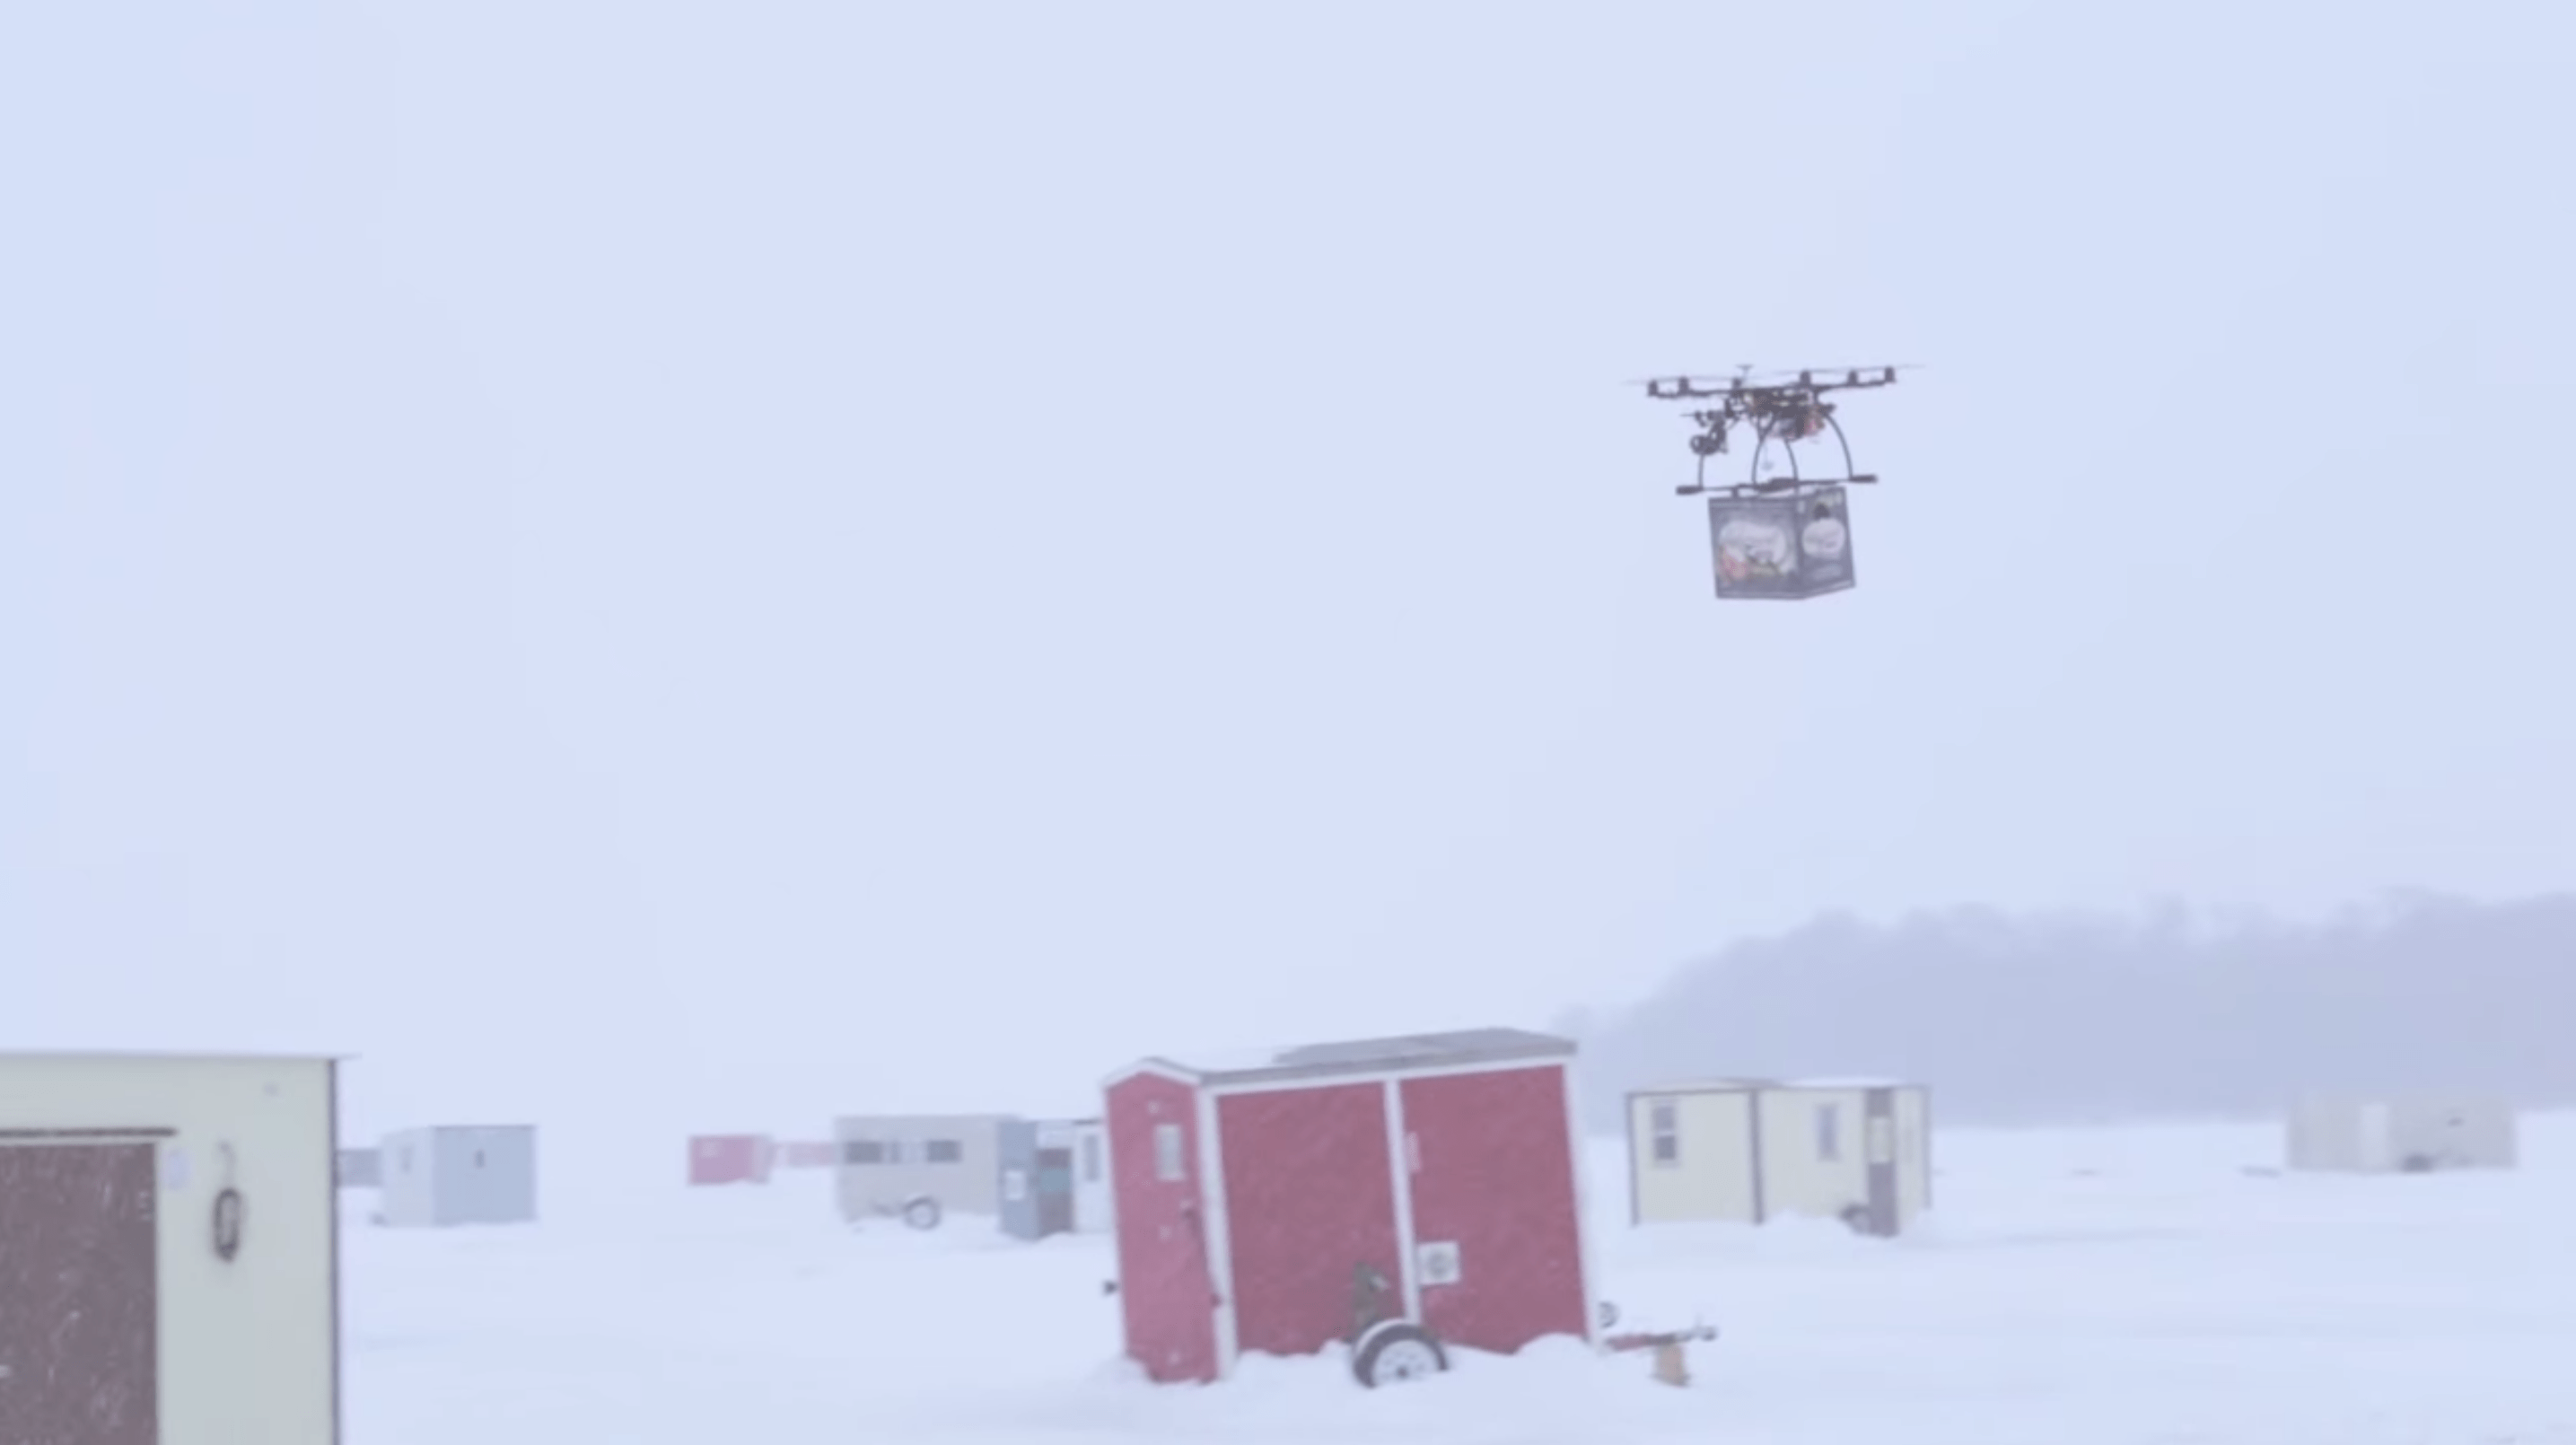 Watch Drones Delivering Everything from Beer to Defibrillators